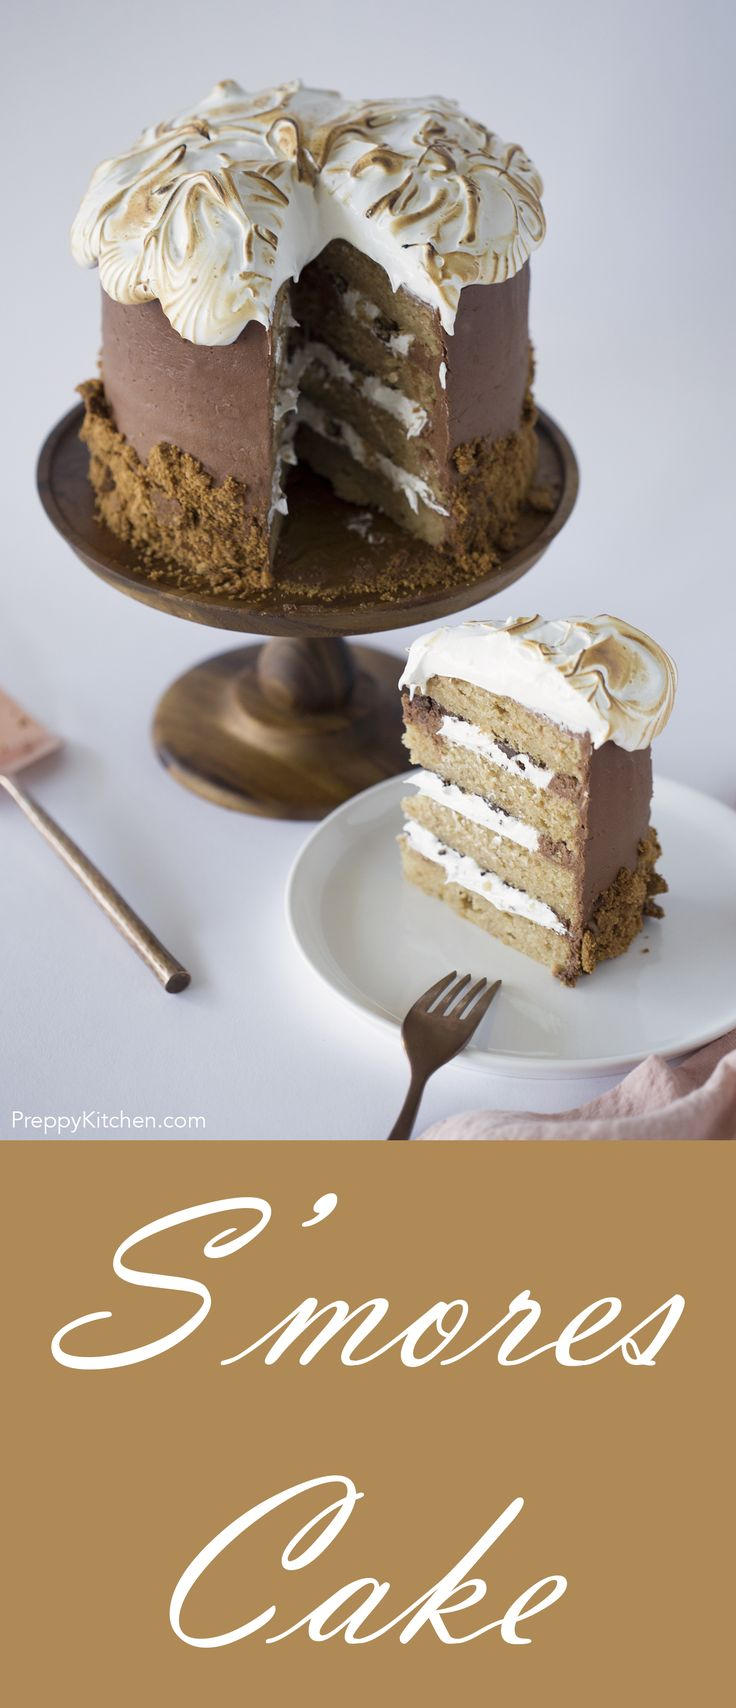 Easy S'Mores cake that you can make at home.